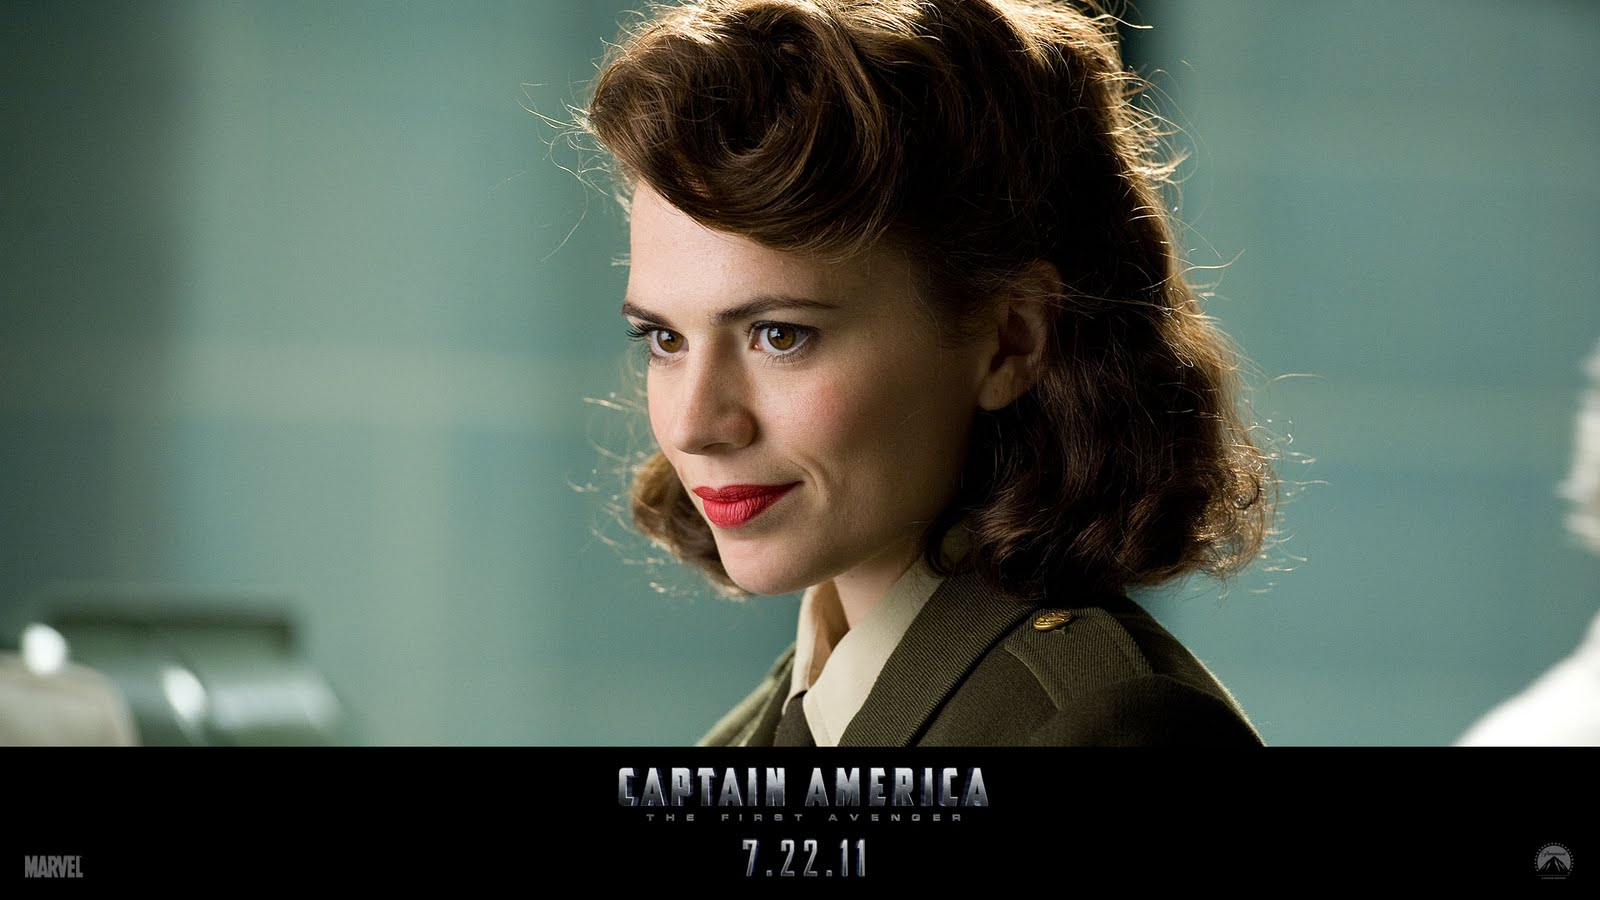 http://2.bp.blogspot.com/-x4quD64_Q5k/TjQ4oTFOWsI/AAAAAAAAB5M/od89AQMlE2M/s1600/Hayley_Atwell_in_Captain_America%2B_The_First_Avenger_Wallpaper_4_1024.jpg